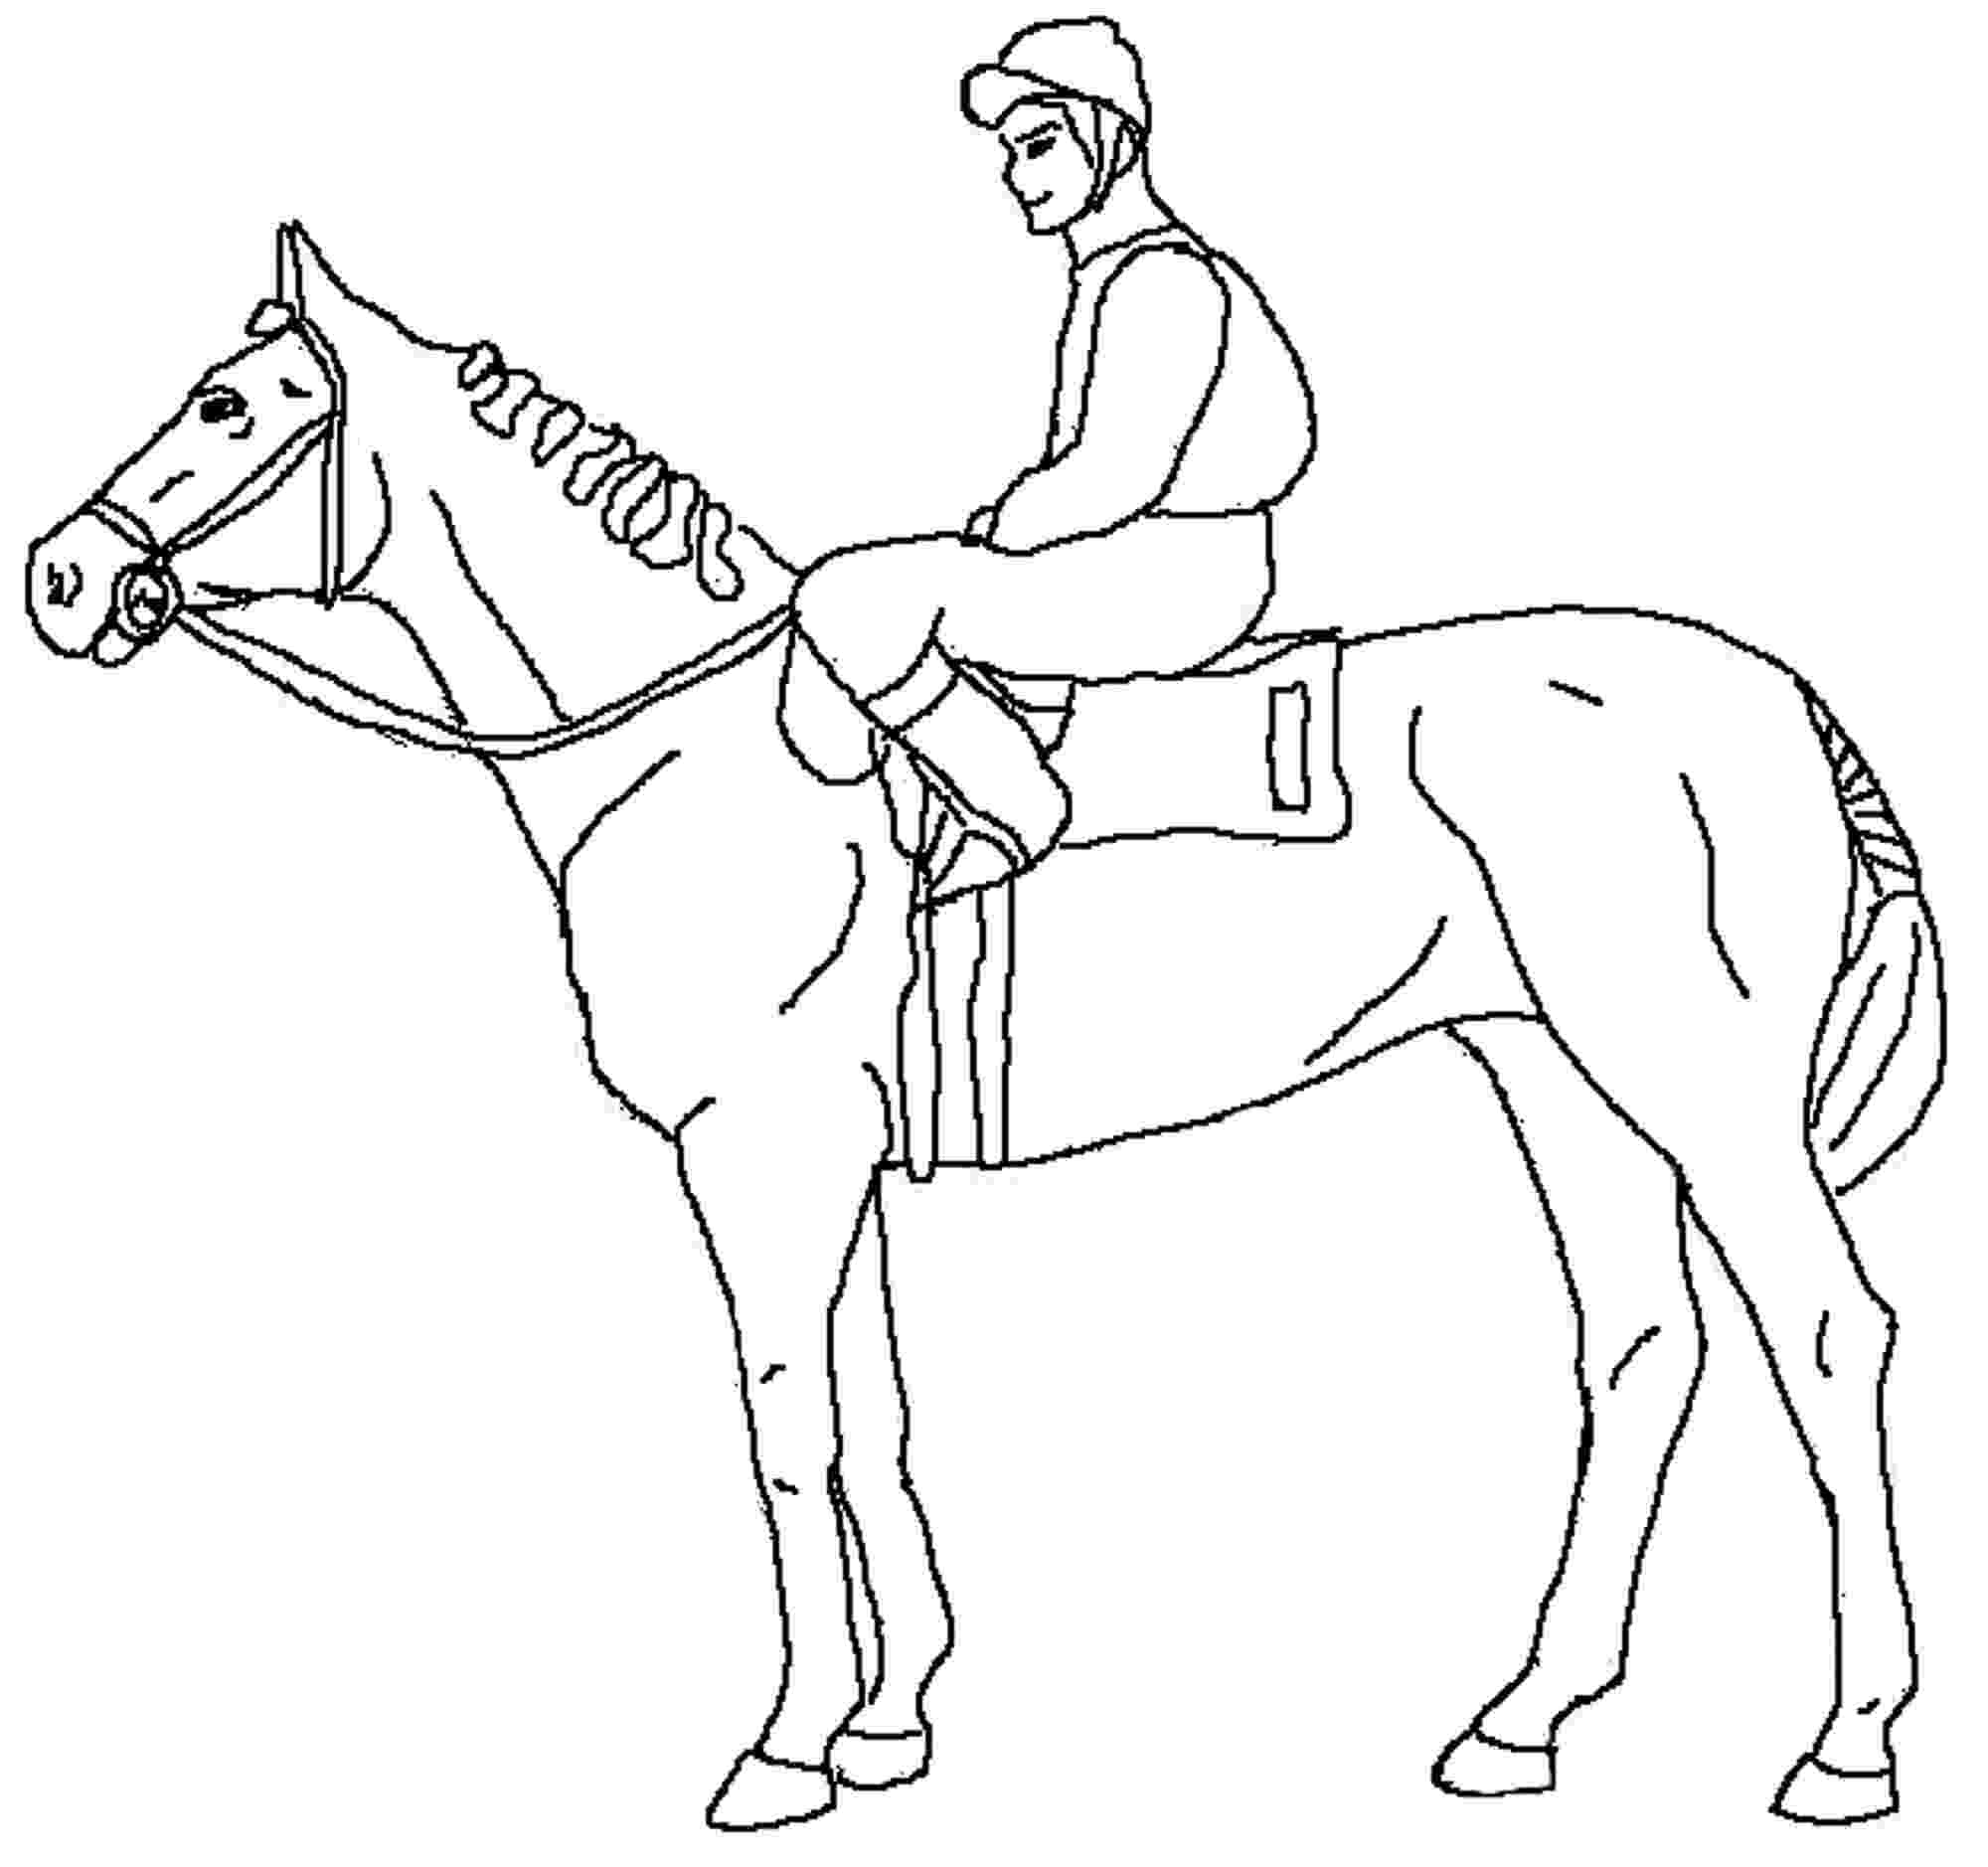 picture of a horse to color fun horse coloring pages for your kids printable horse a picture of color to